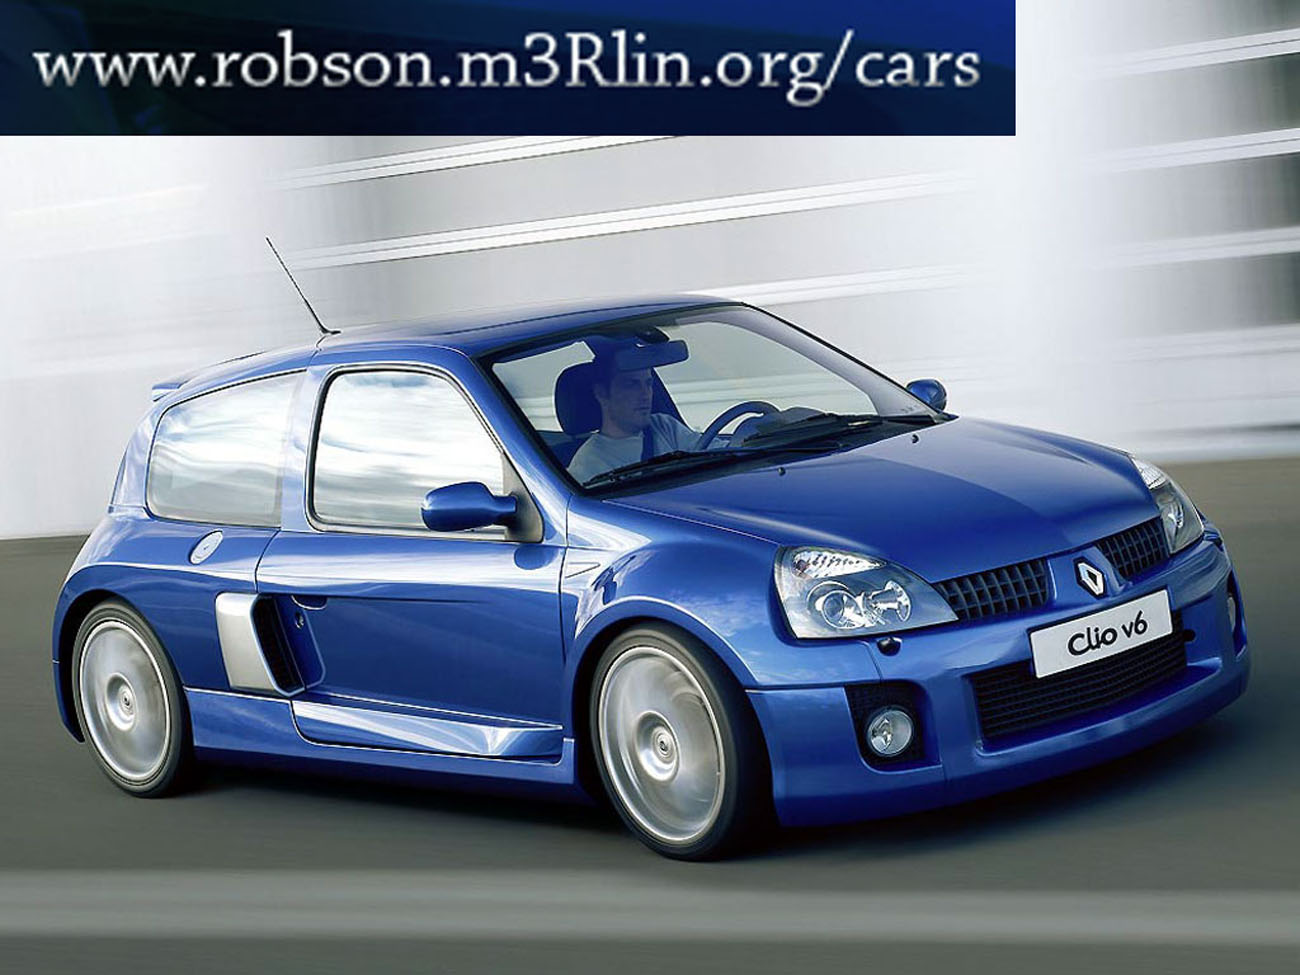 renault clio rs v6-pic. 2